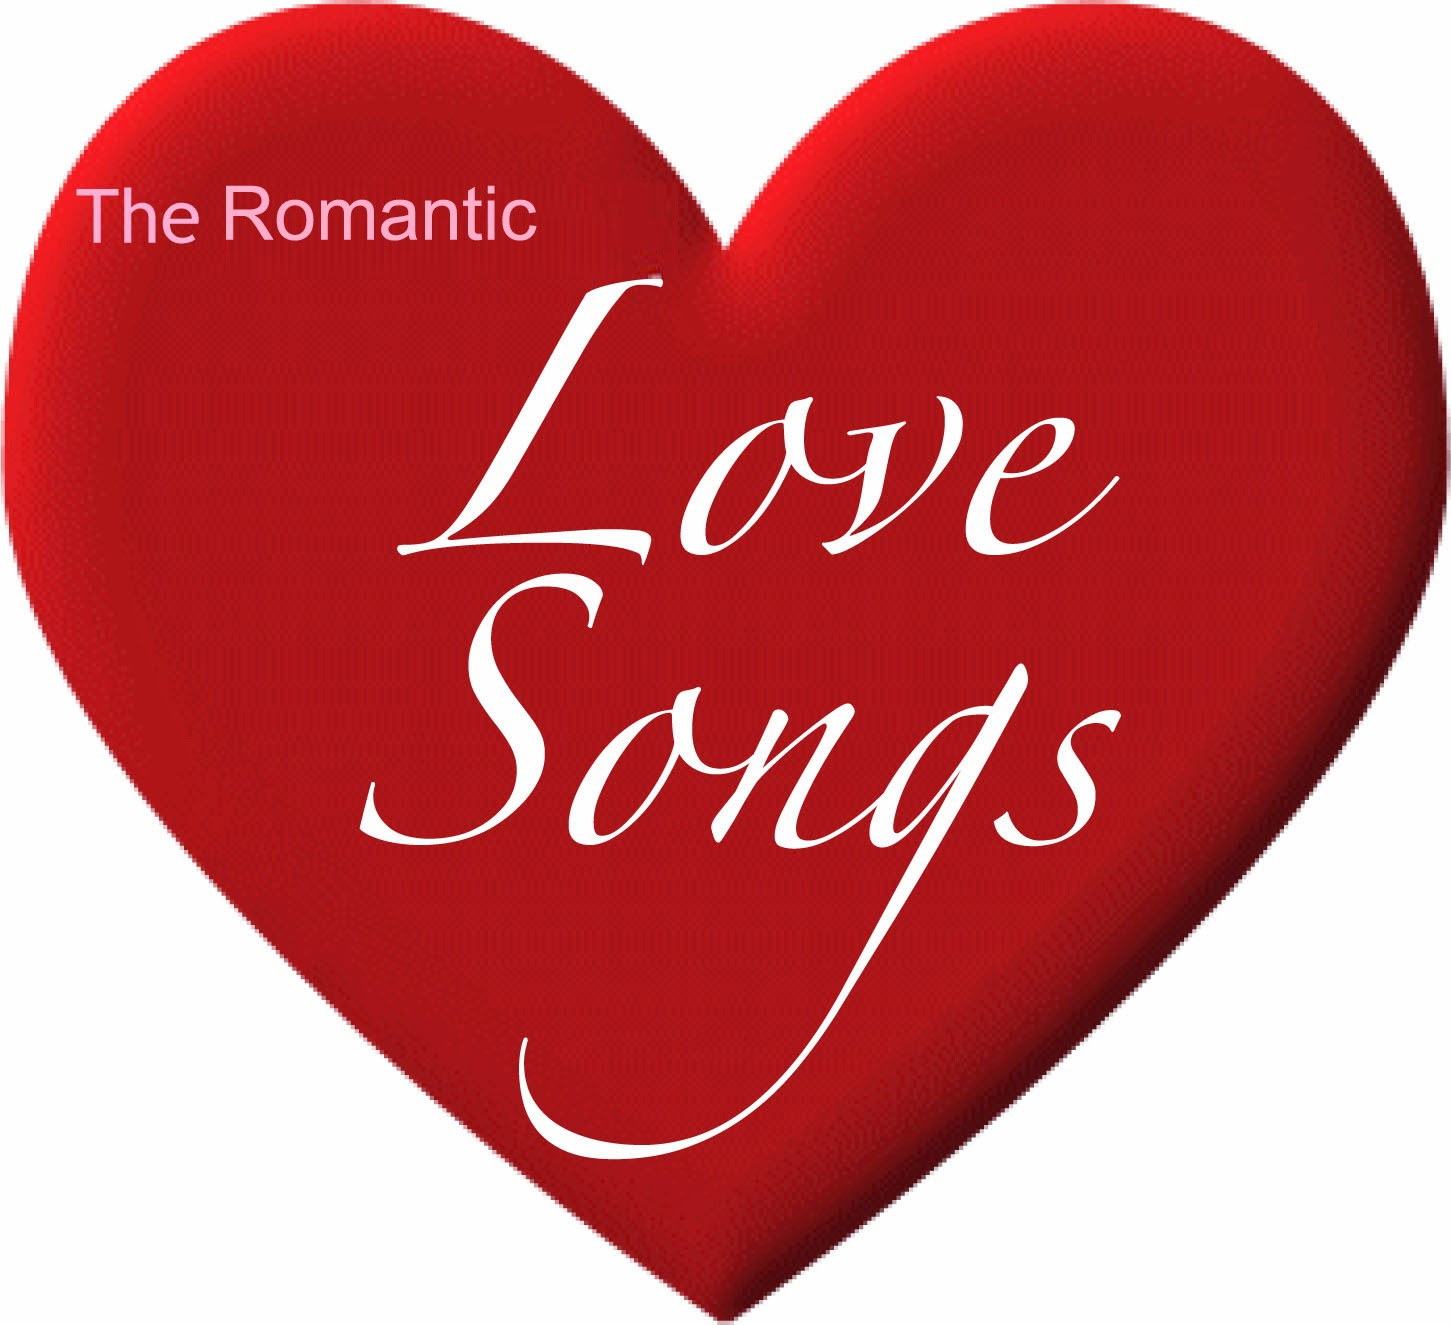 Greatest romantic love songs